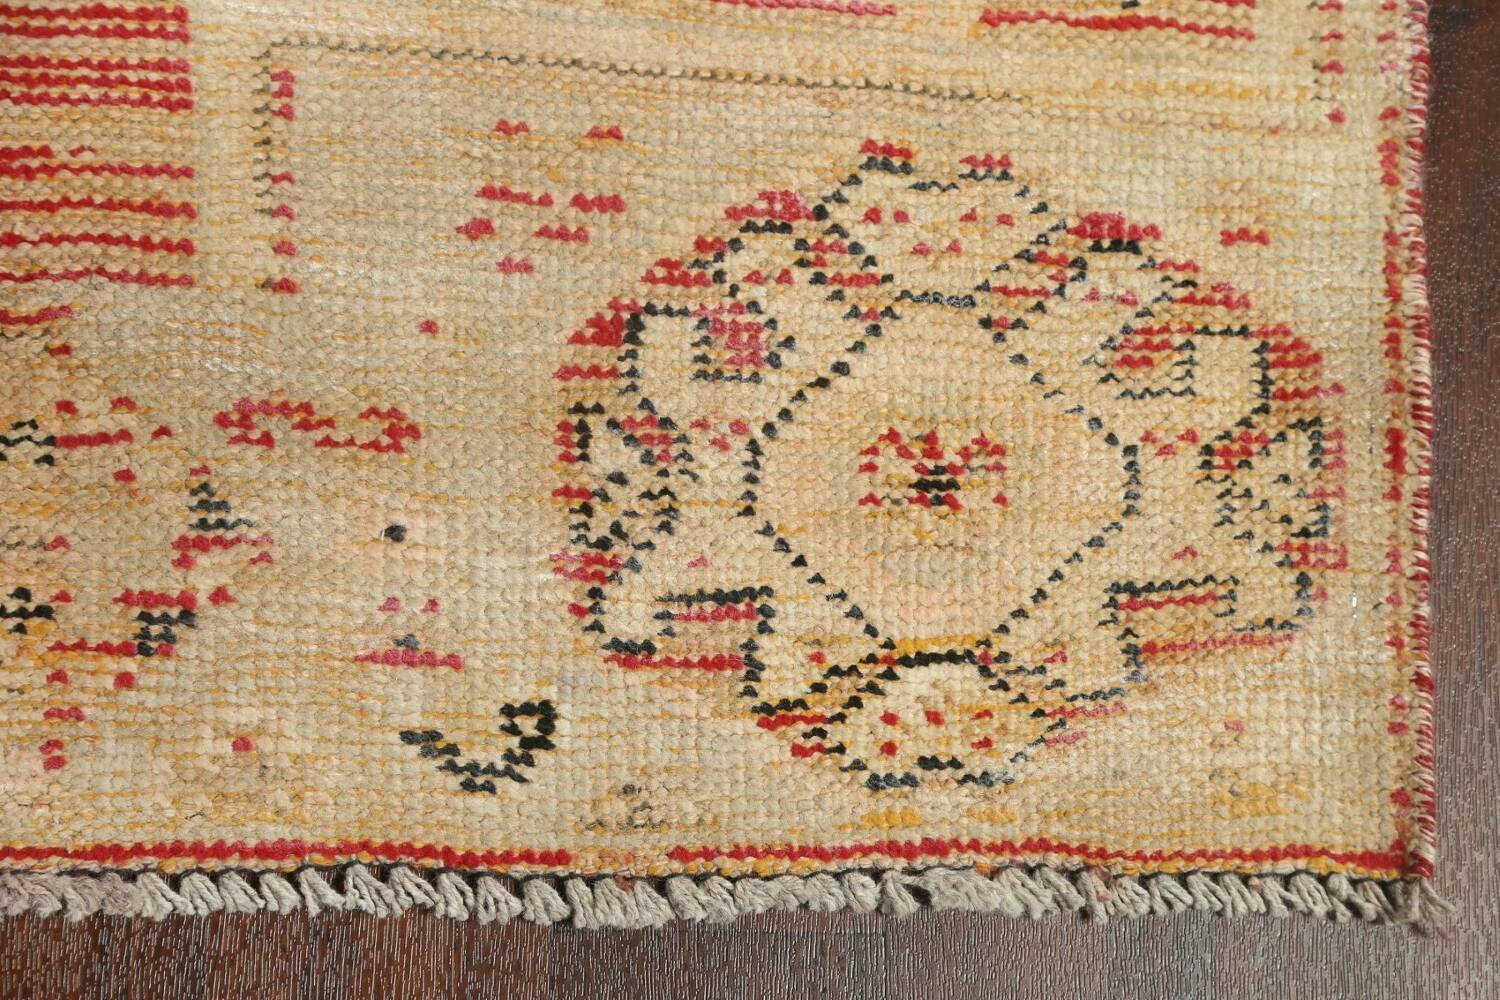 Antique Distressed Malayer Persian Runner Rug 4x12 image 6